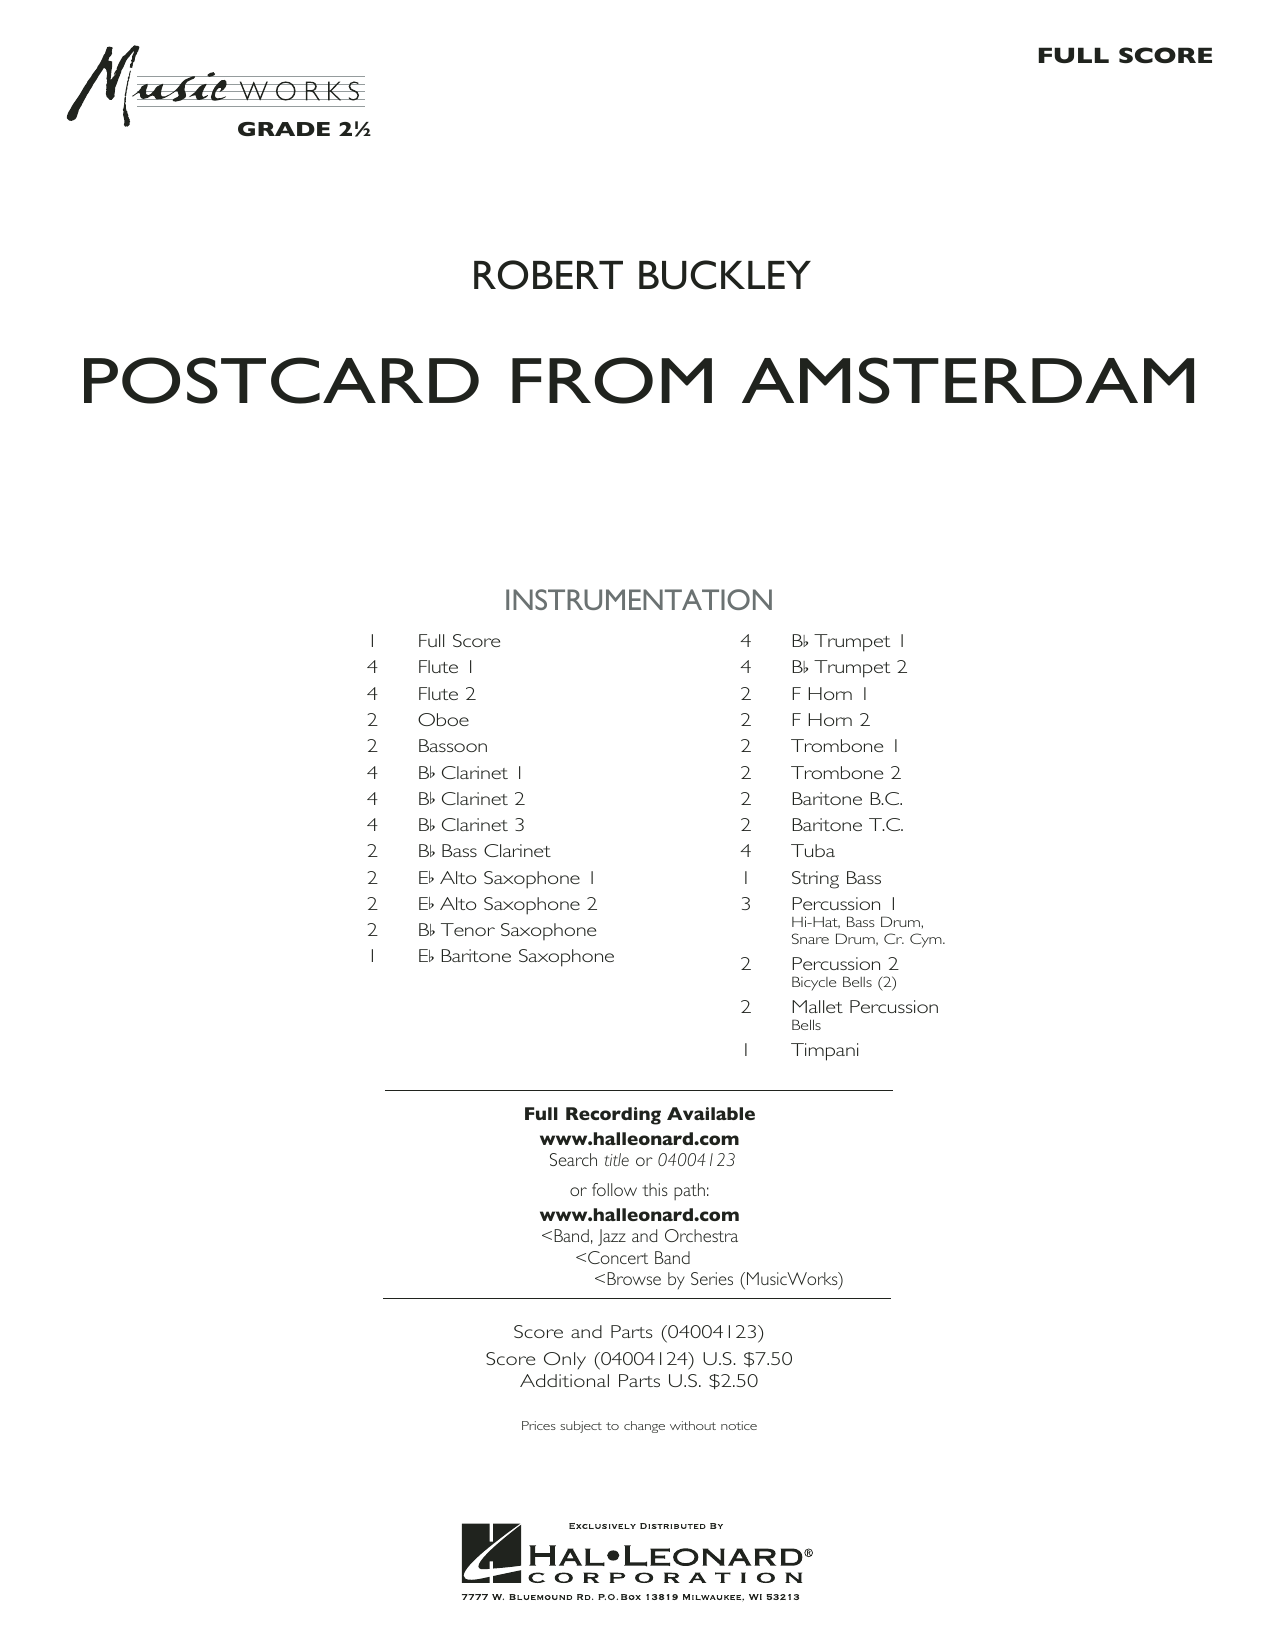 Postcard from Amsterdam (COMPLETE) sheet music for concert band by Robert Buckley